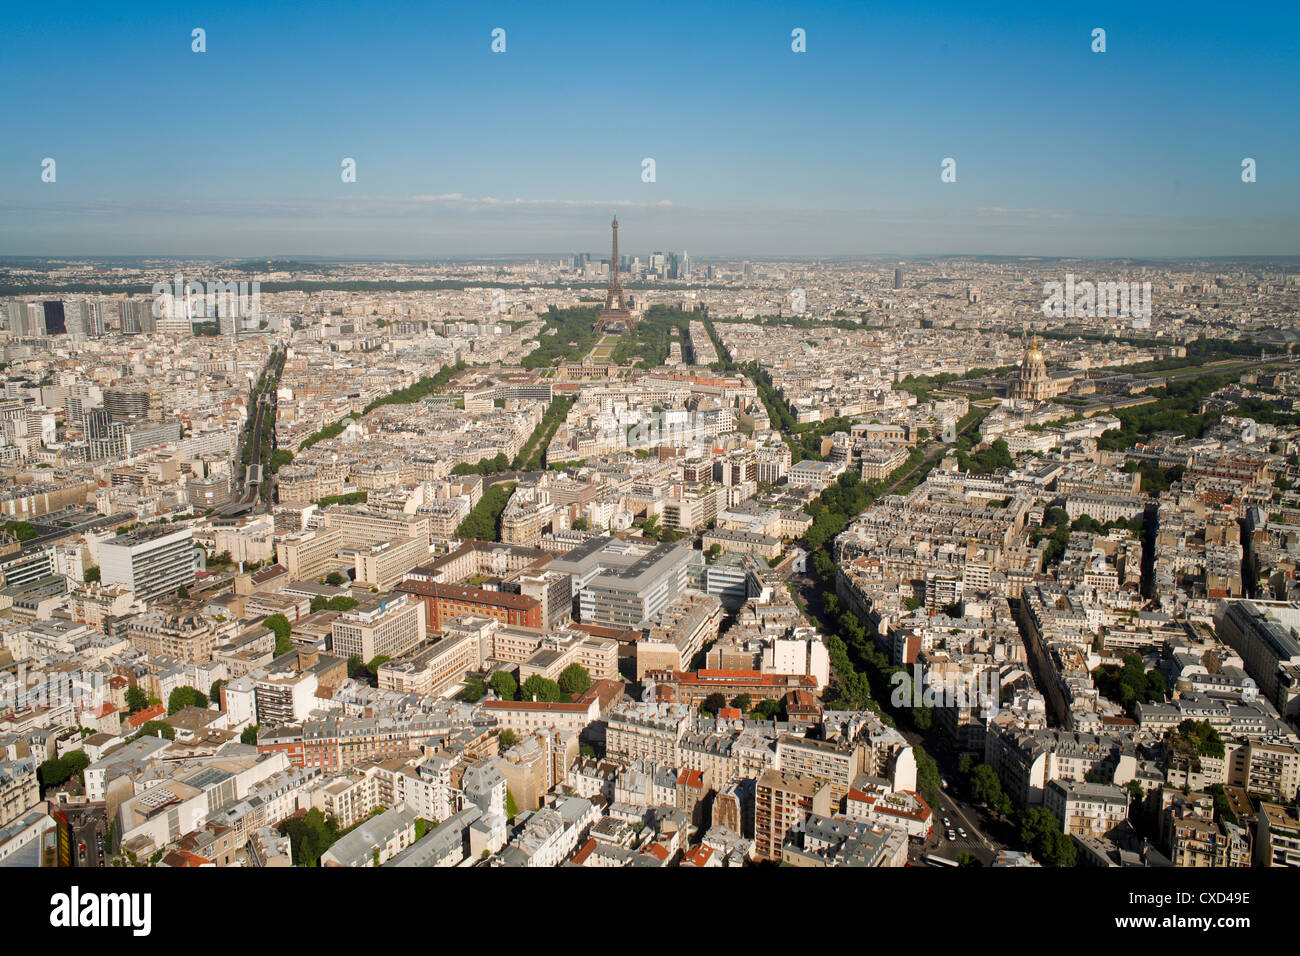 View of city with the Eiffel Tower in distance, from the Tour Montparnasse, Paris, France, Europe - Stock Image